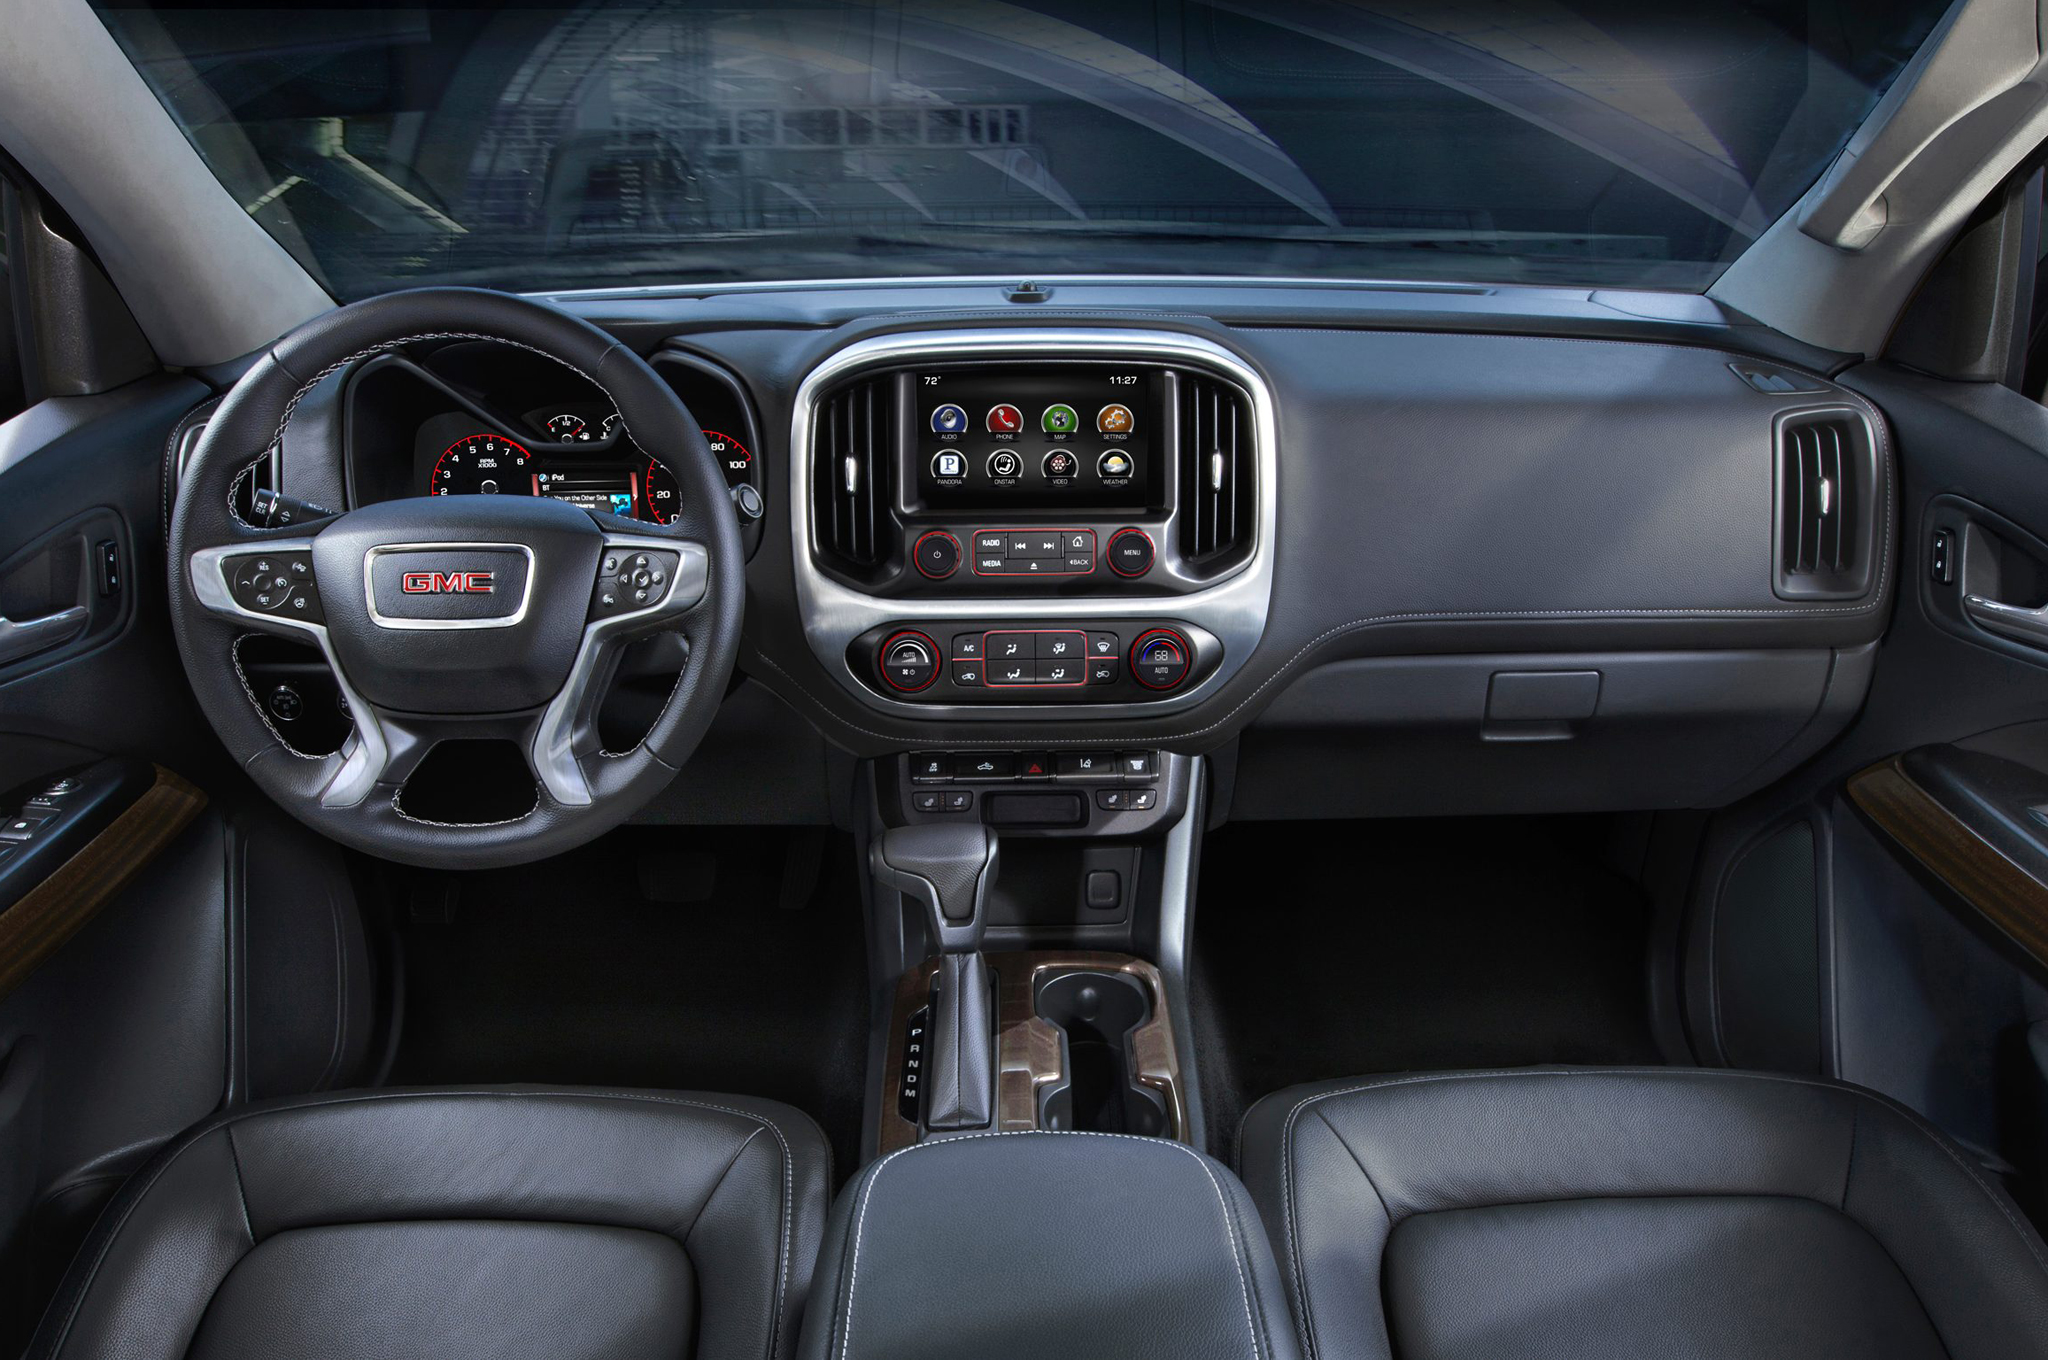 2015 Gmc Canyon Dashboard Head Unit And Cockpit (Photo 1 of 6)